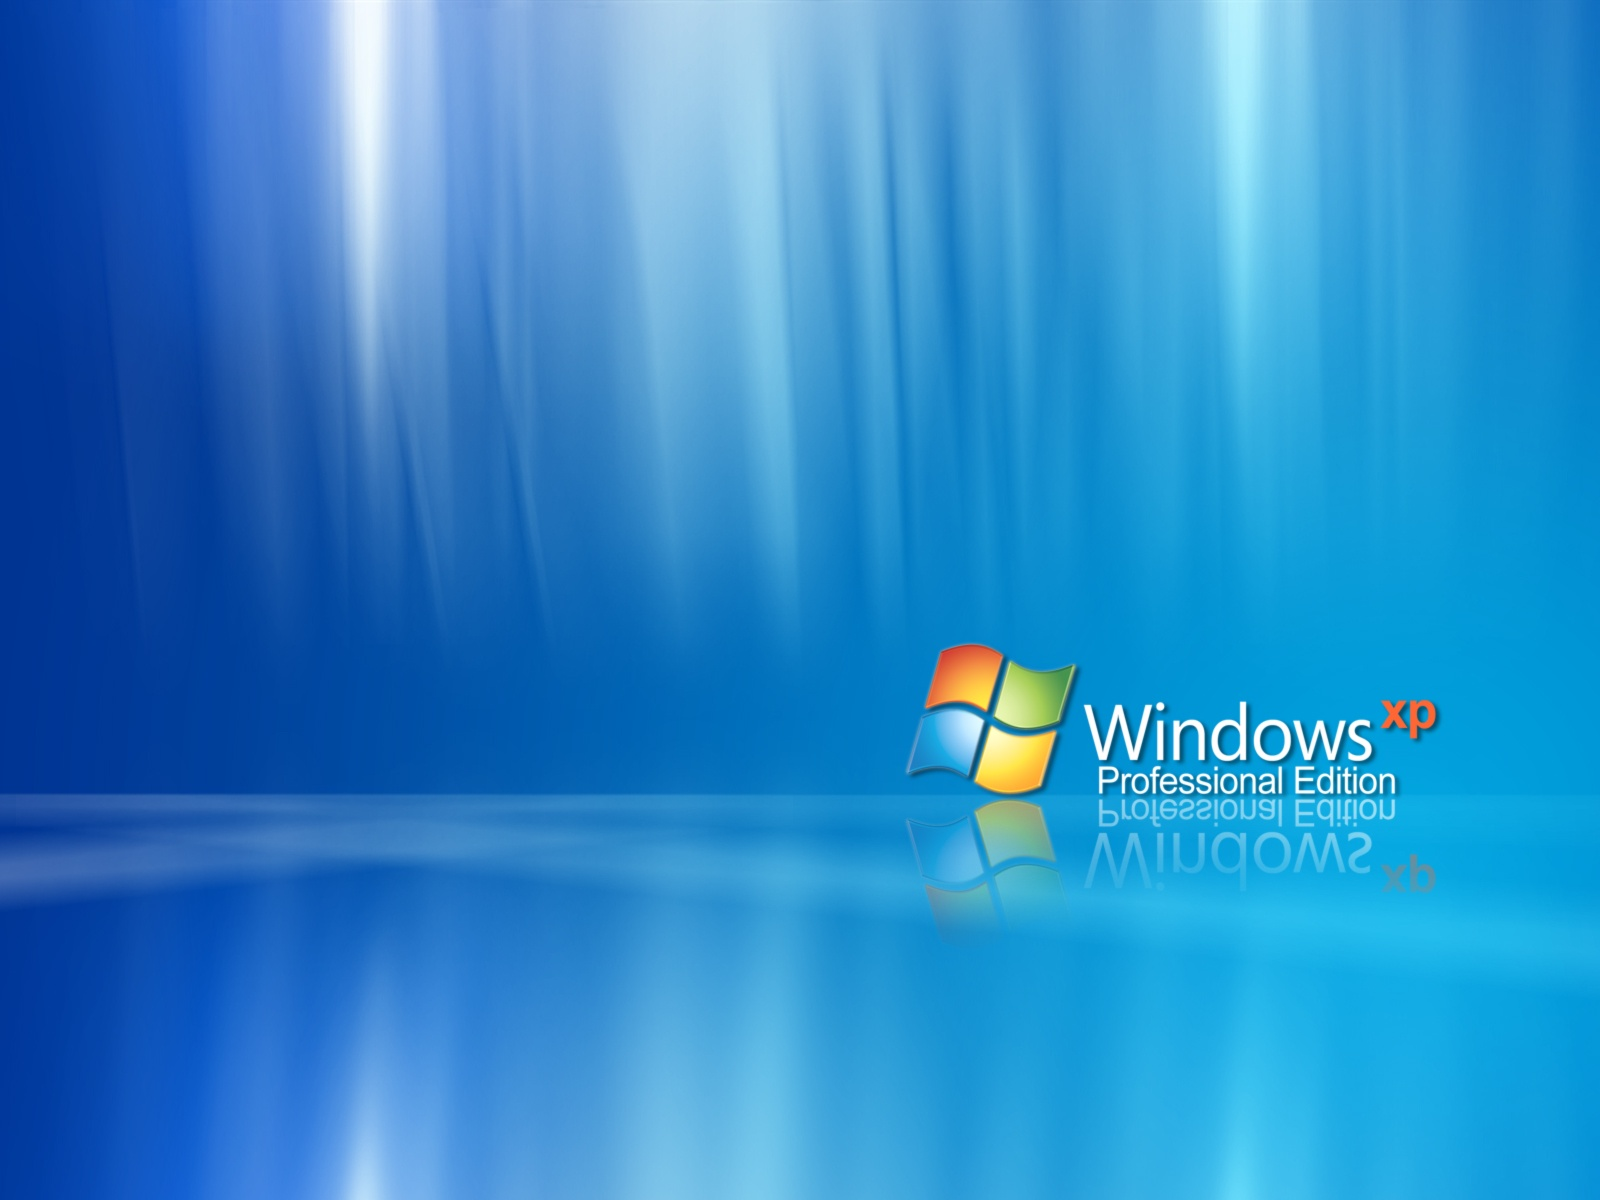 1600x1200 Windows XP Pro desktop wallpapers and stock photos